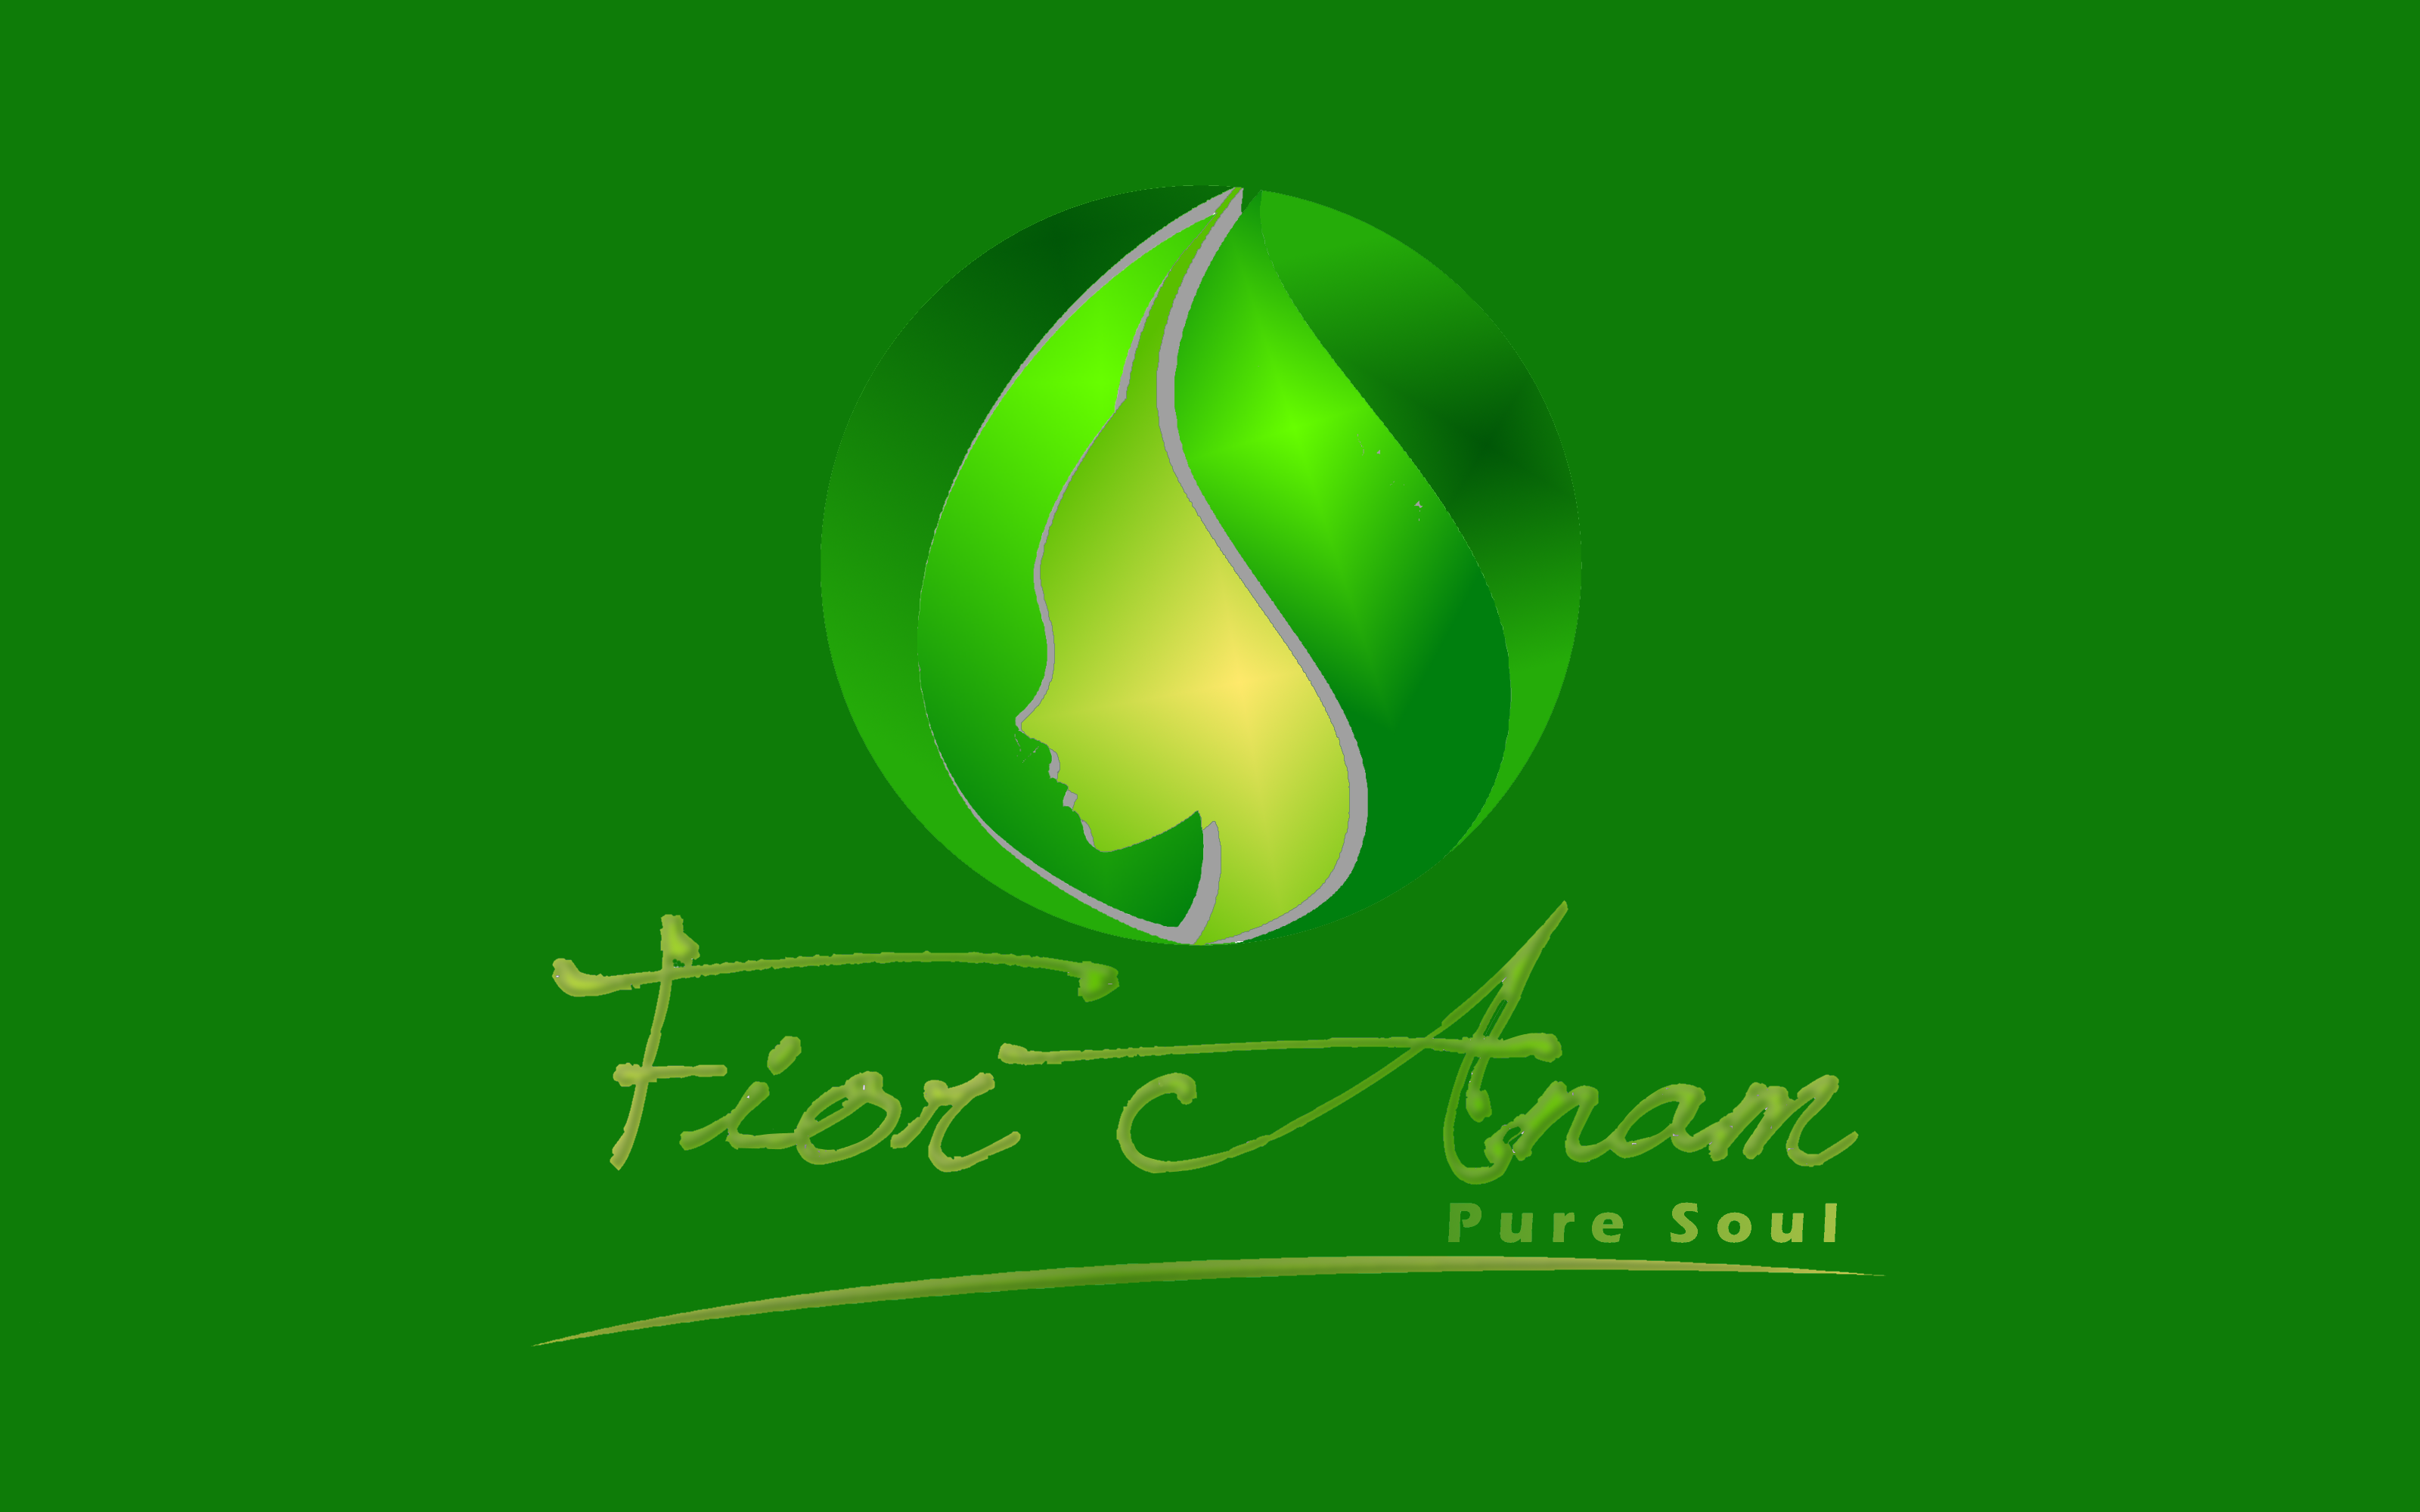 Logo Design by Roberto Bassi - Entry No. 339 in the Logo Design Contest Creative Logo Design for Fior Anam.